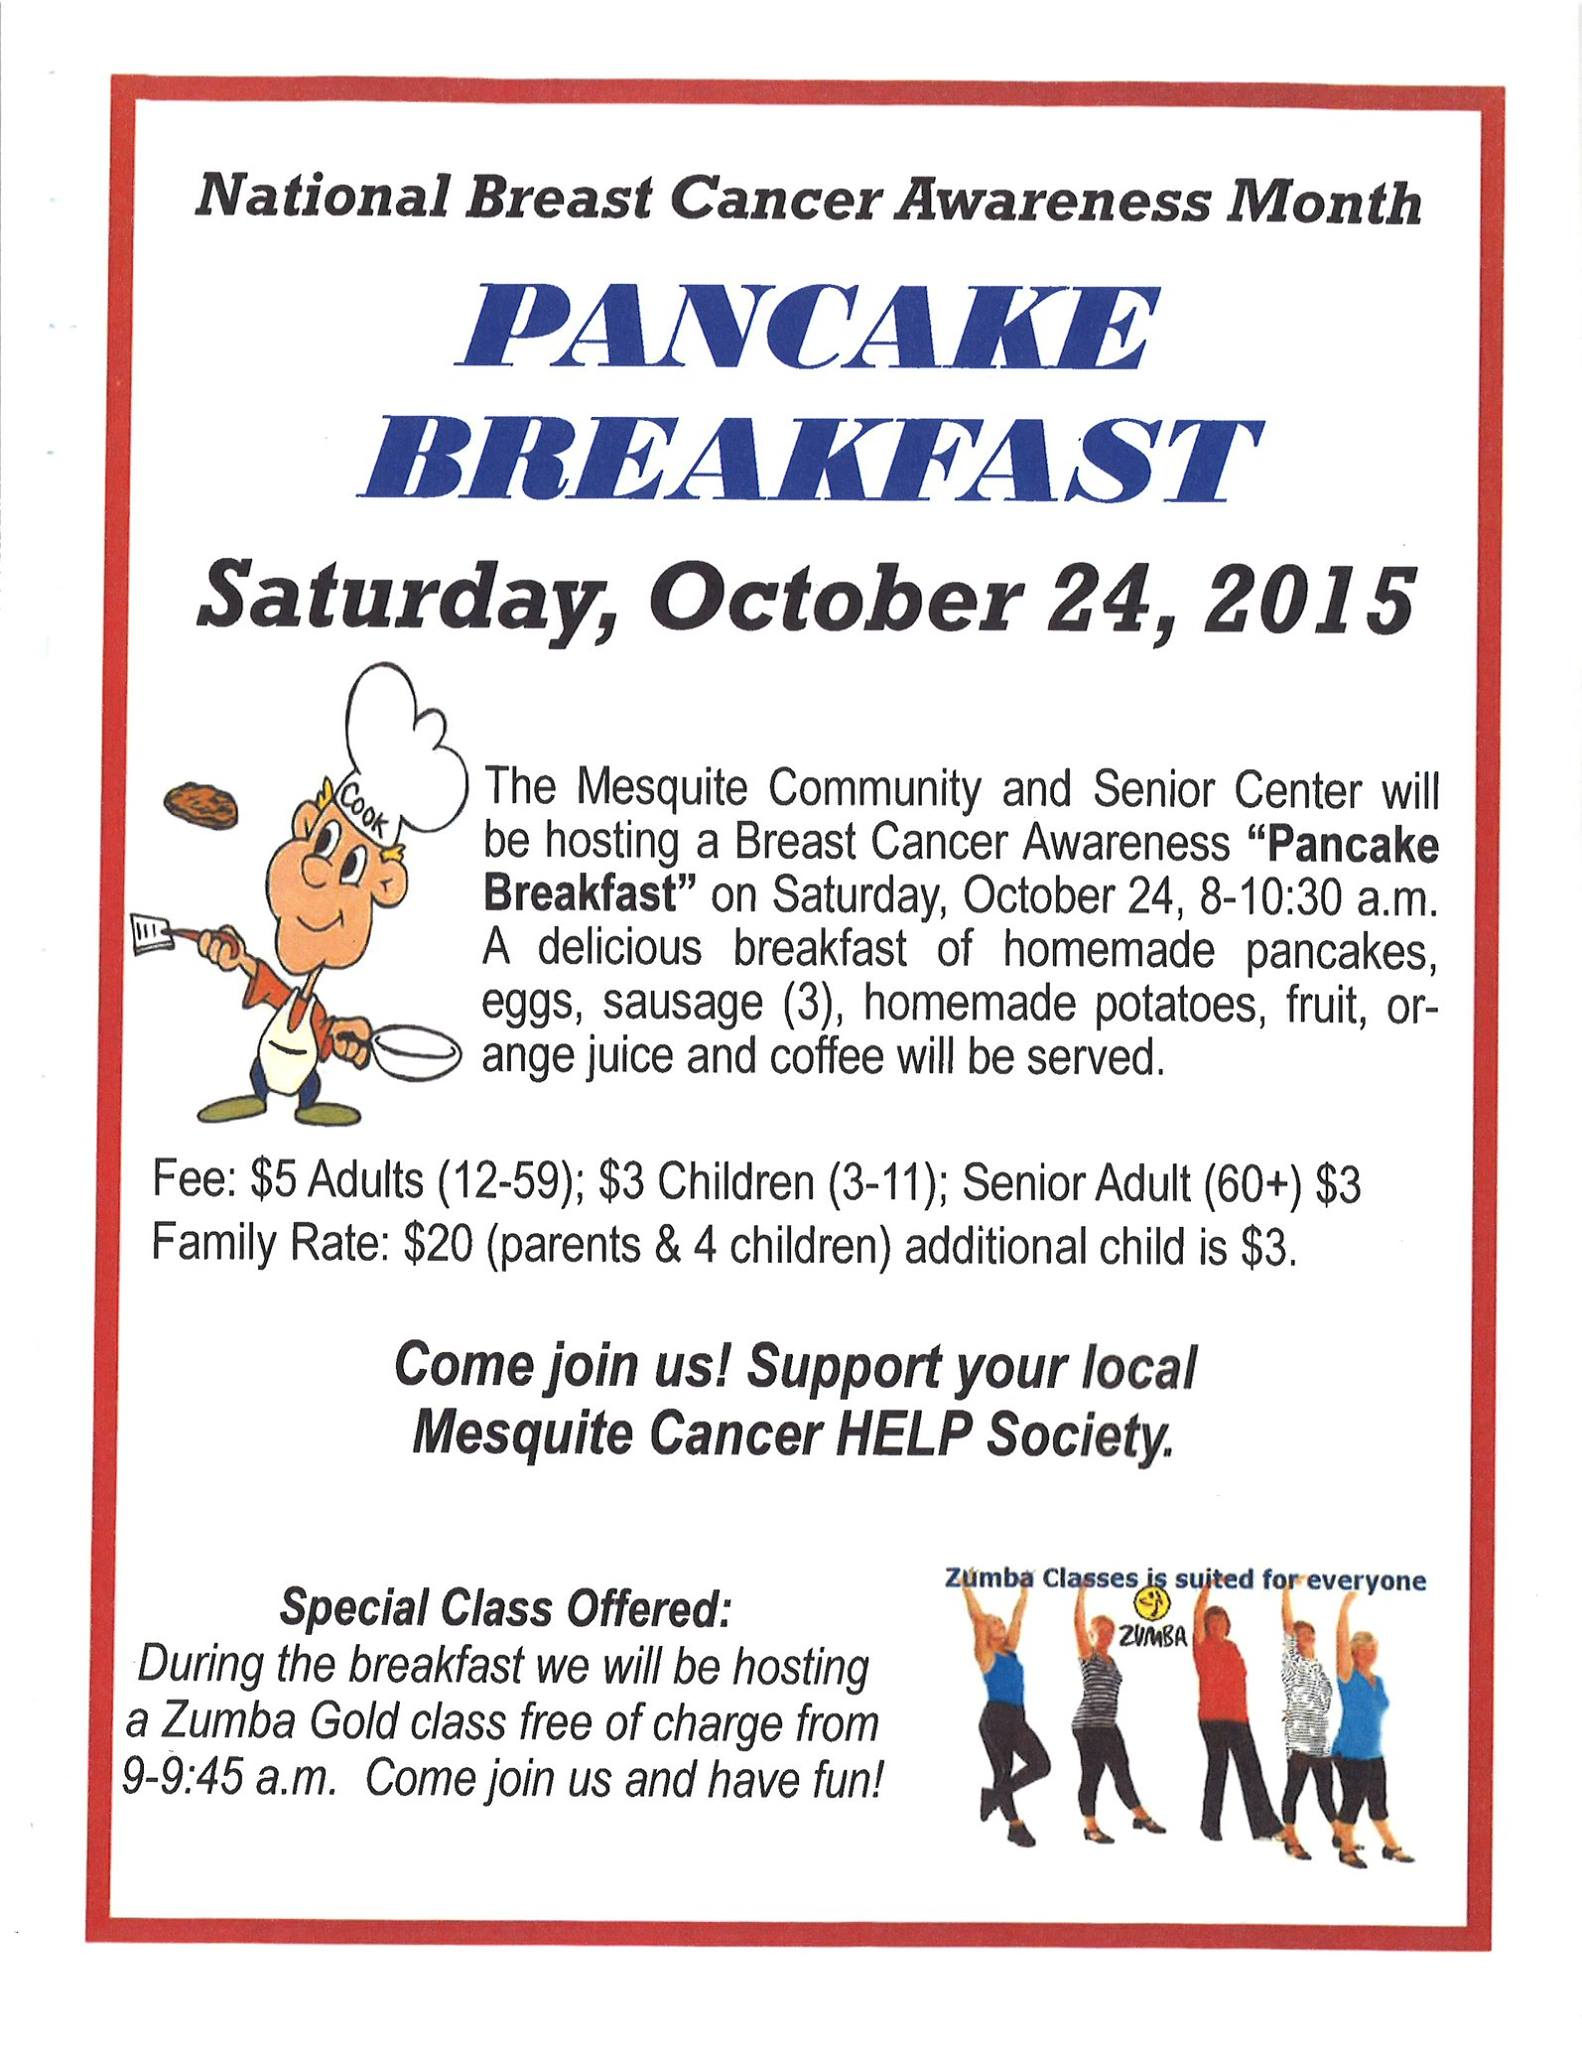 Pancake Breakfast fundraiser will help Mesquite Cancer HELP